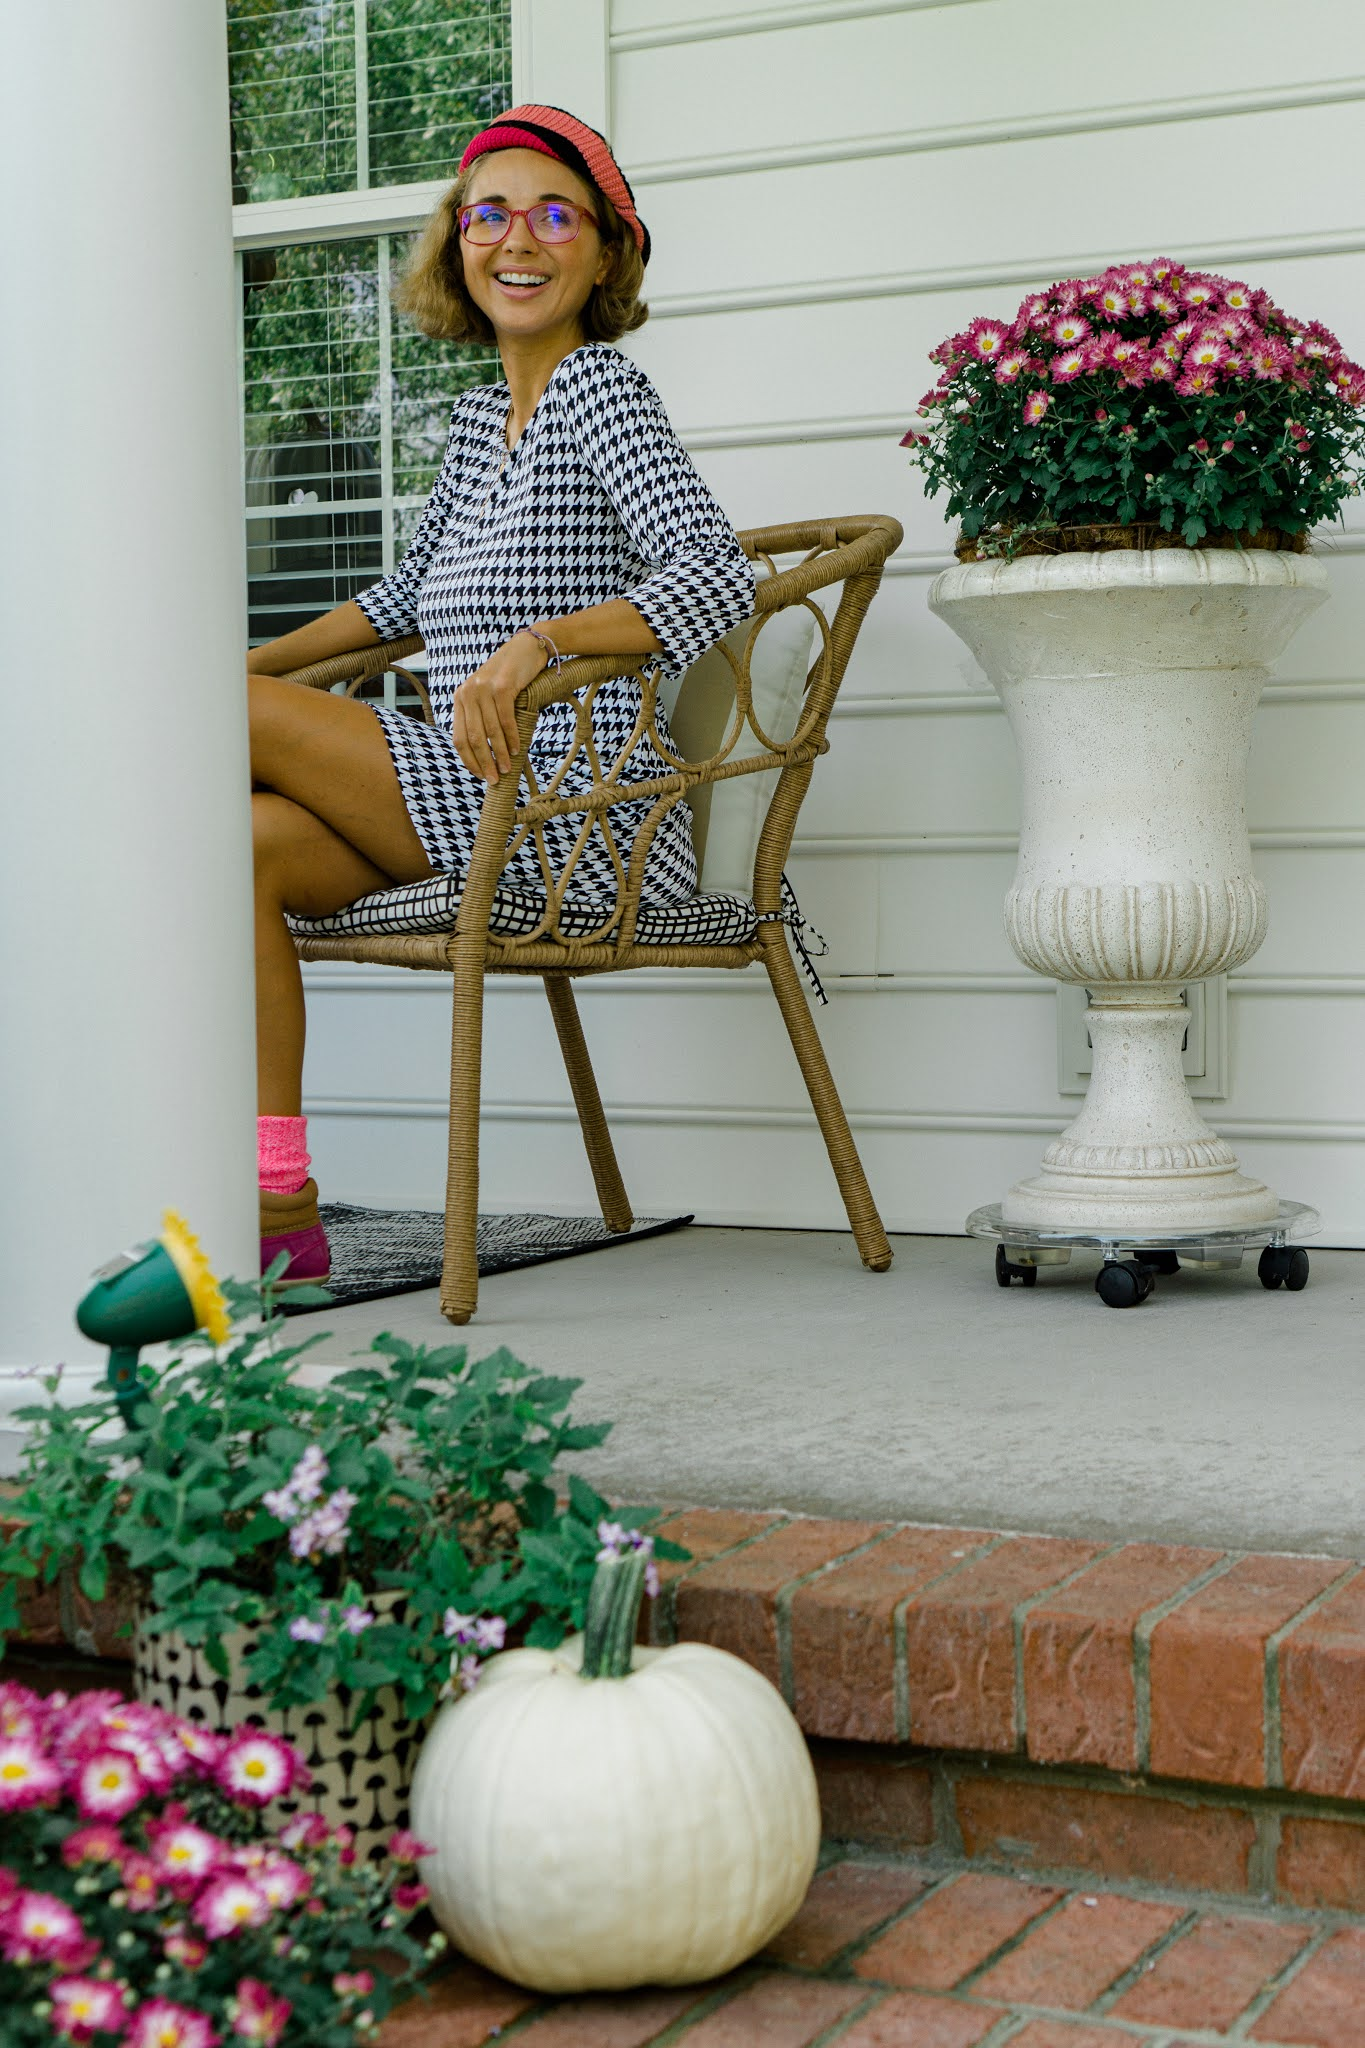 How to decorate your front porch for fall with pumpkins and mums